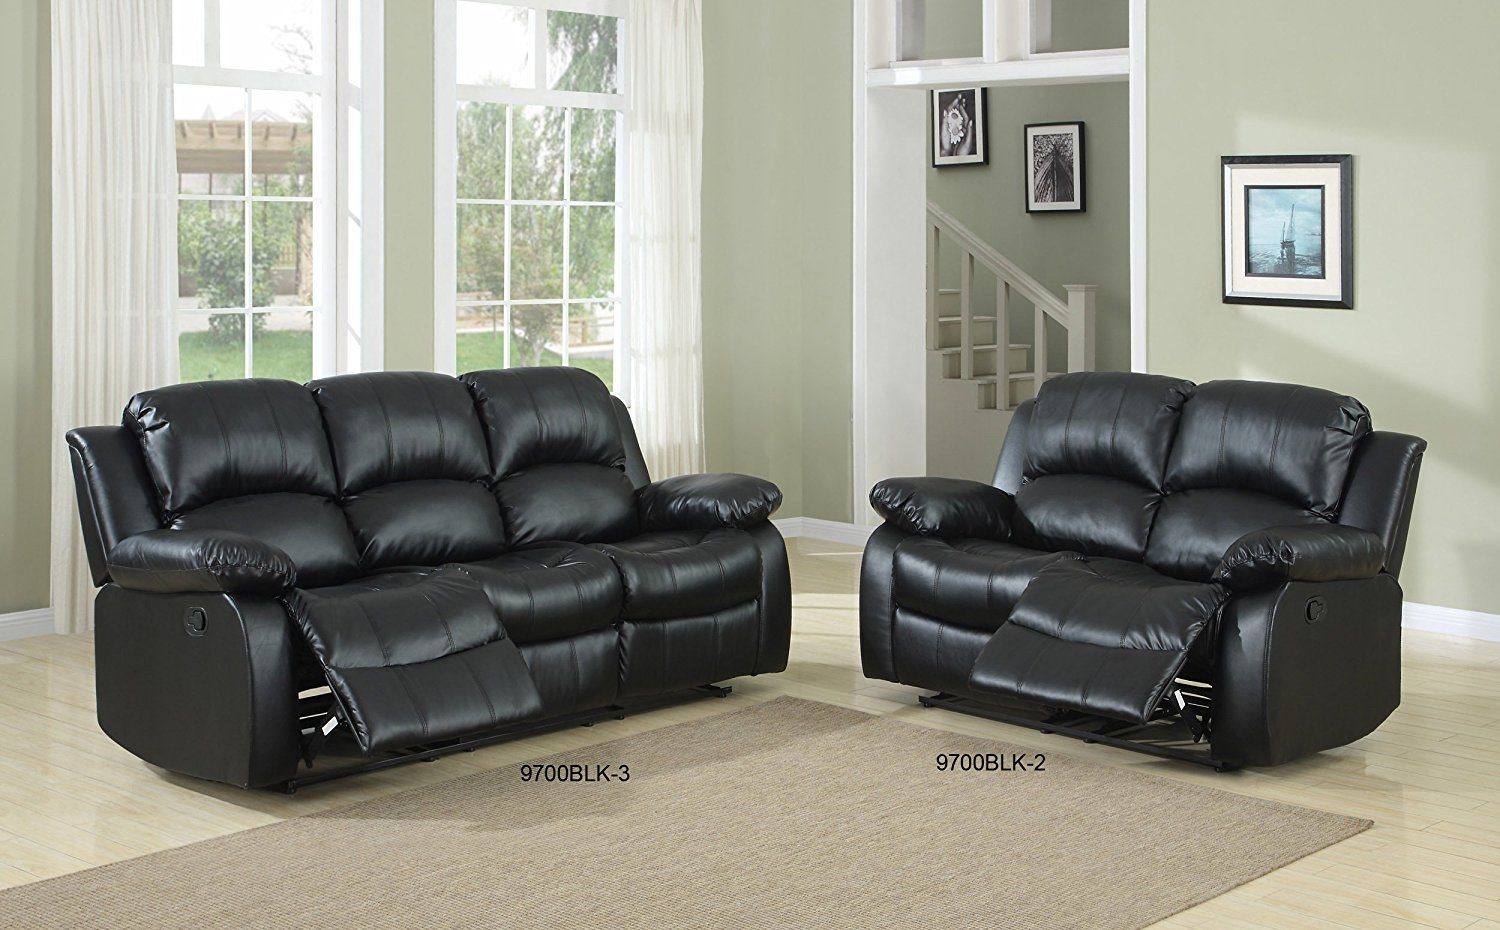 Recliner Cool Rooms To Go Reclining Sofa